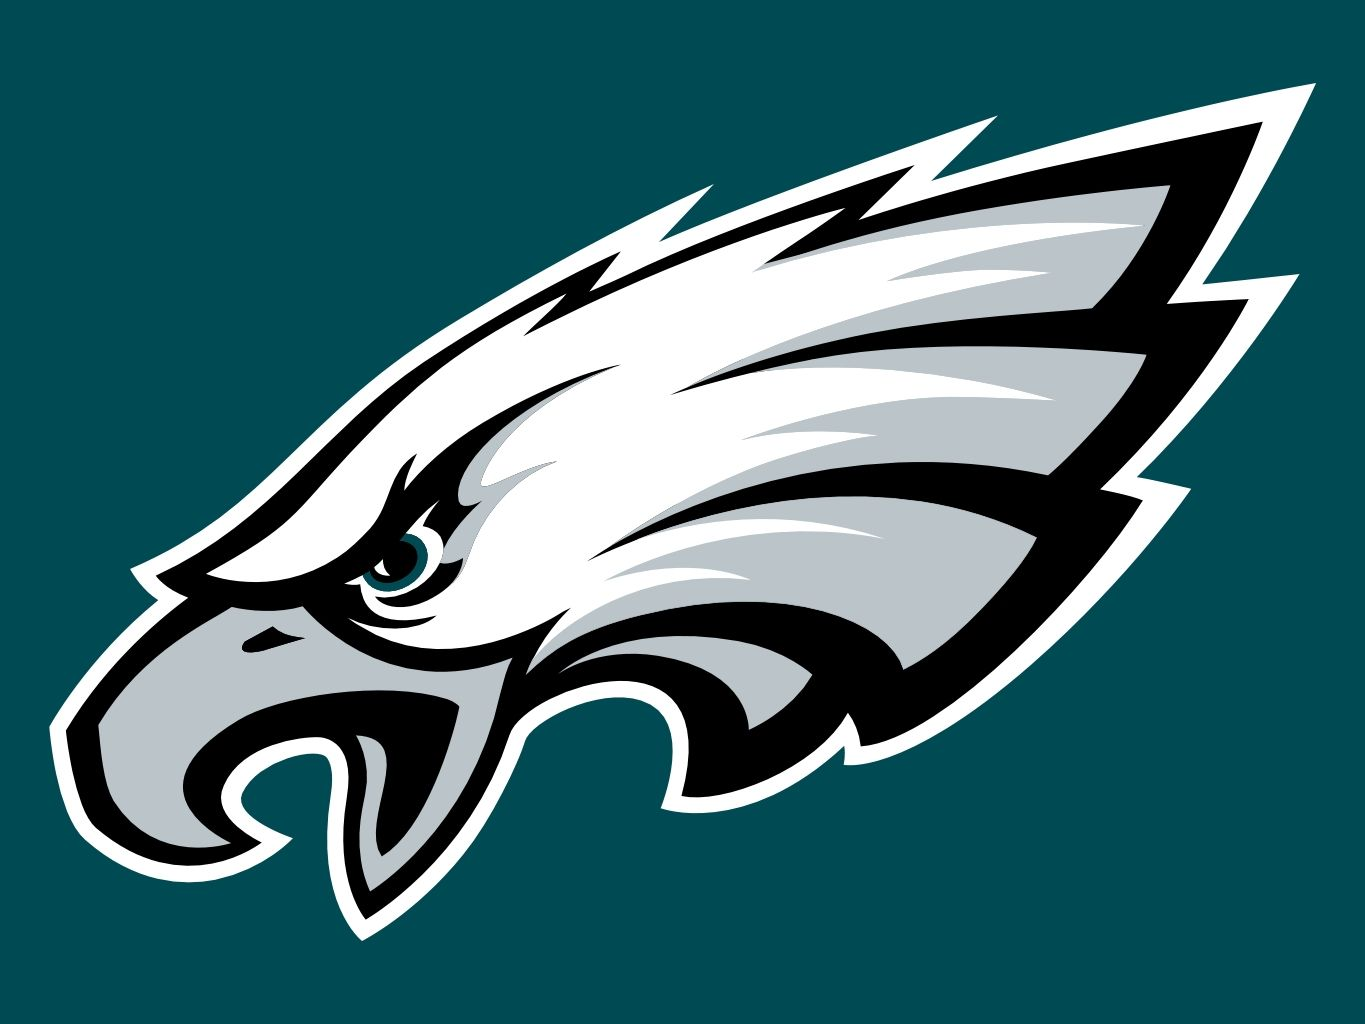 Philadelphia Eagles Logos Pictures Clipart.